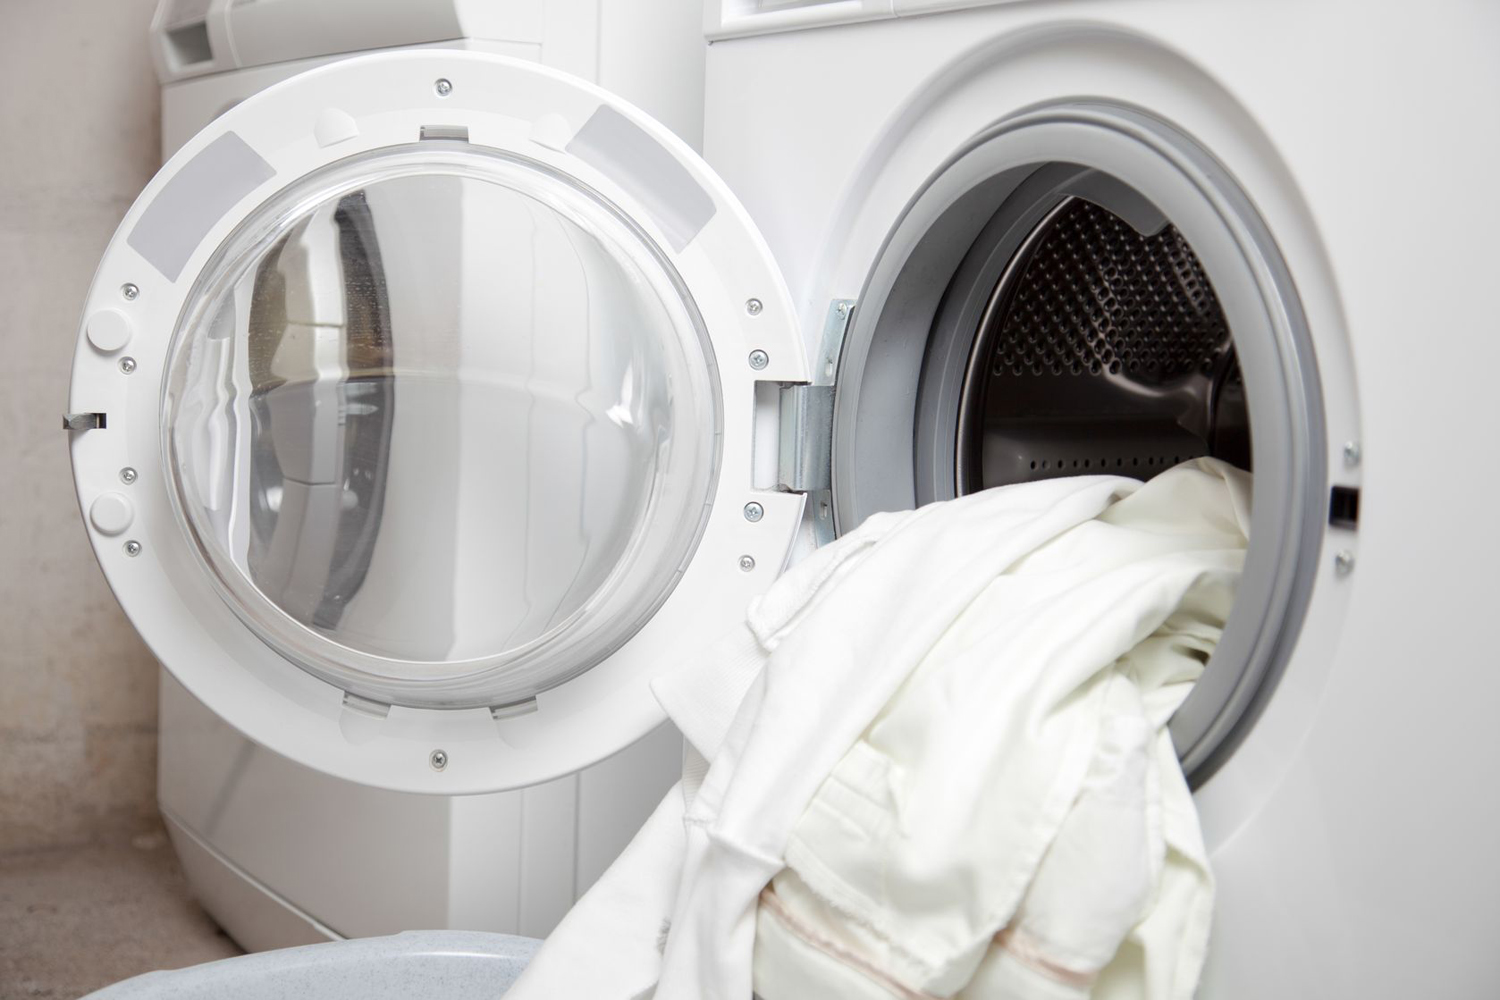 Clothes Washing Machine ~ Don t risk your skin with counterfeit laundry detergent